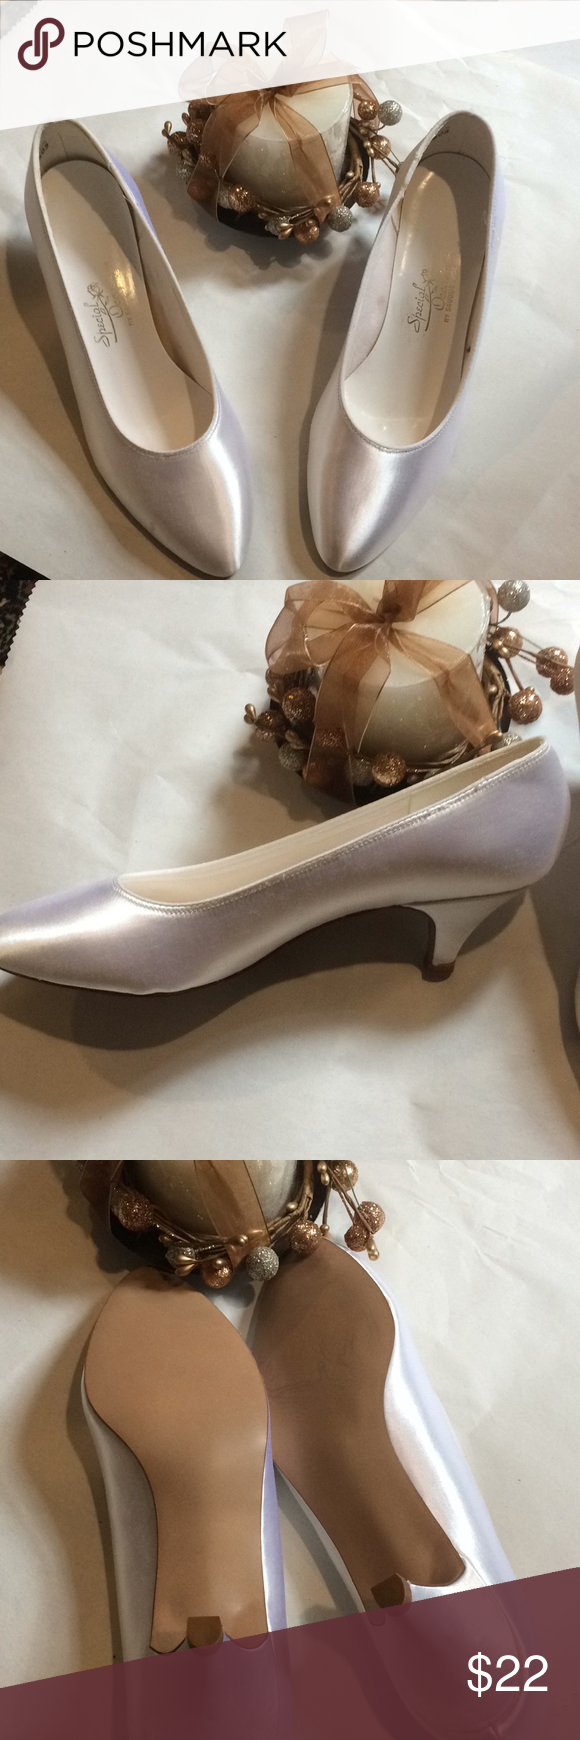 New Size 7 Wedding Shoes With 1 Heel Candle Special Occasions By Saugus Shoe Size 7 Wedding Shoes With Free Wedding Candle Spec Wedding Shoes Heels Shoes